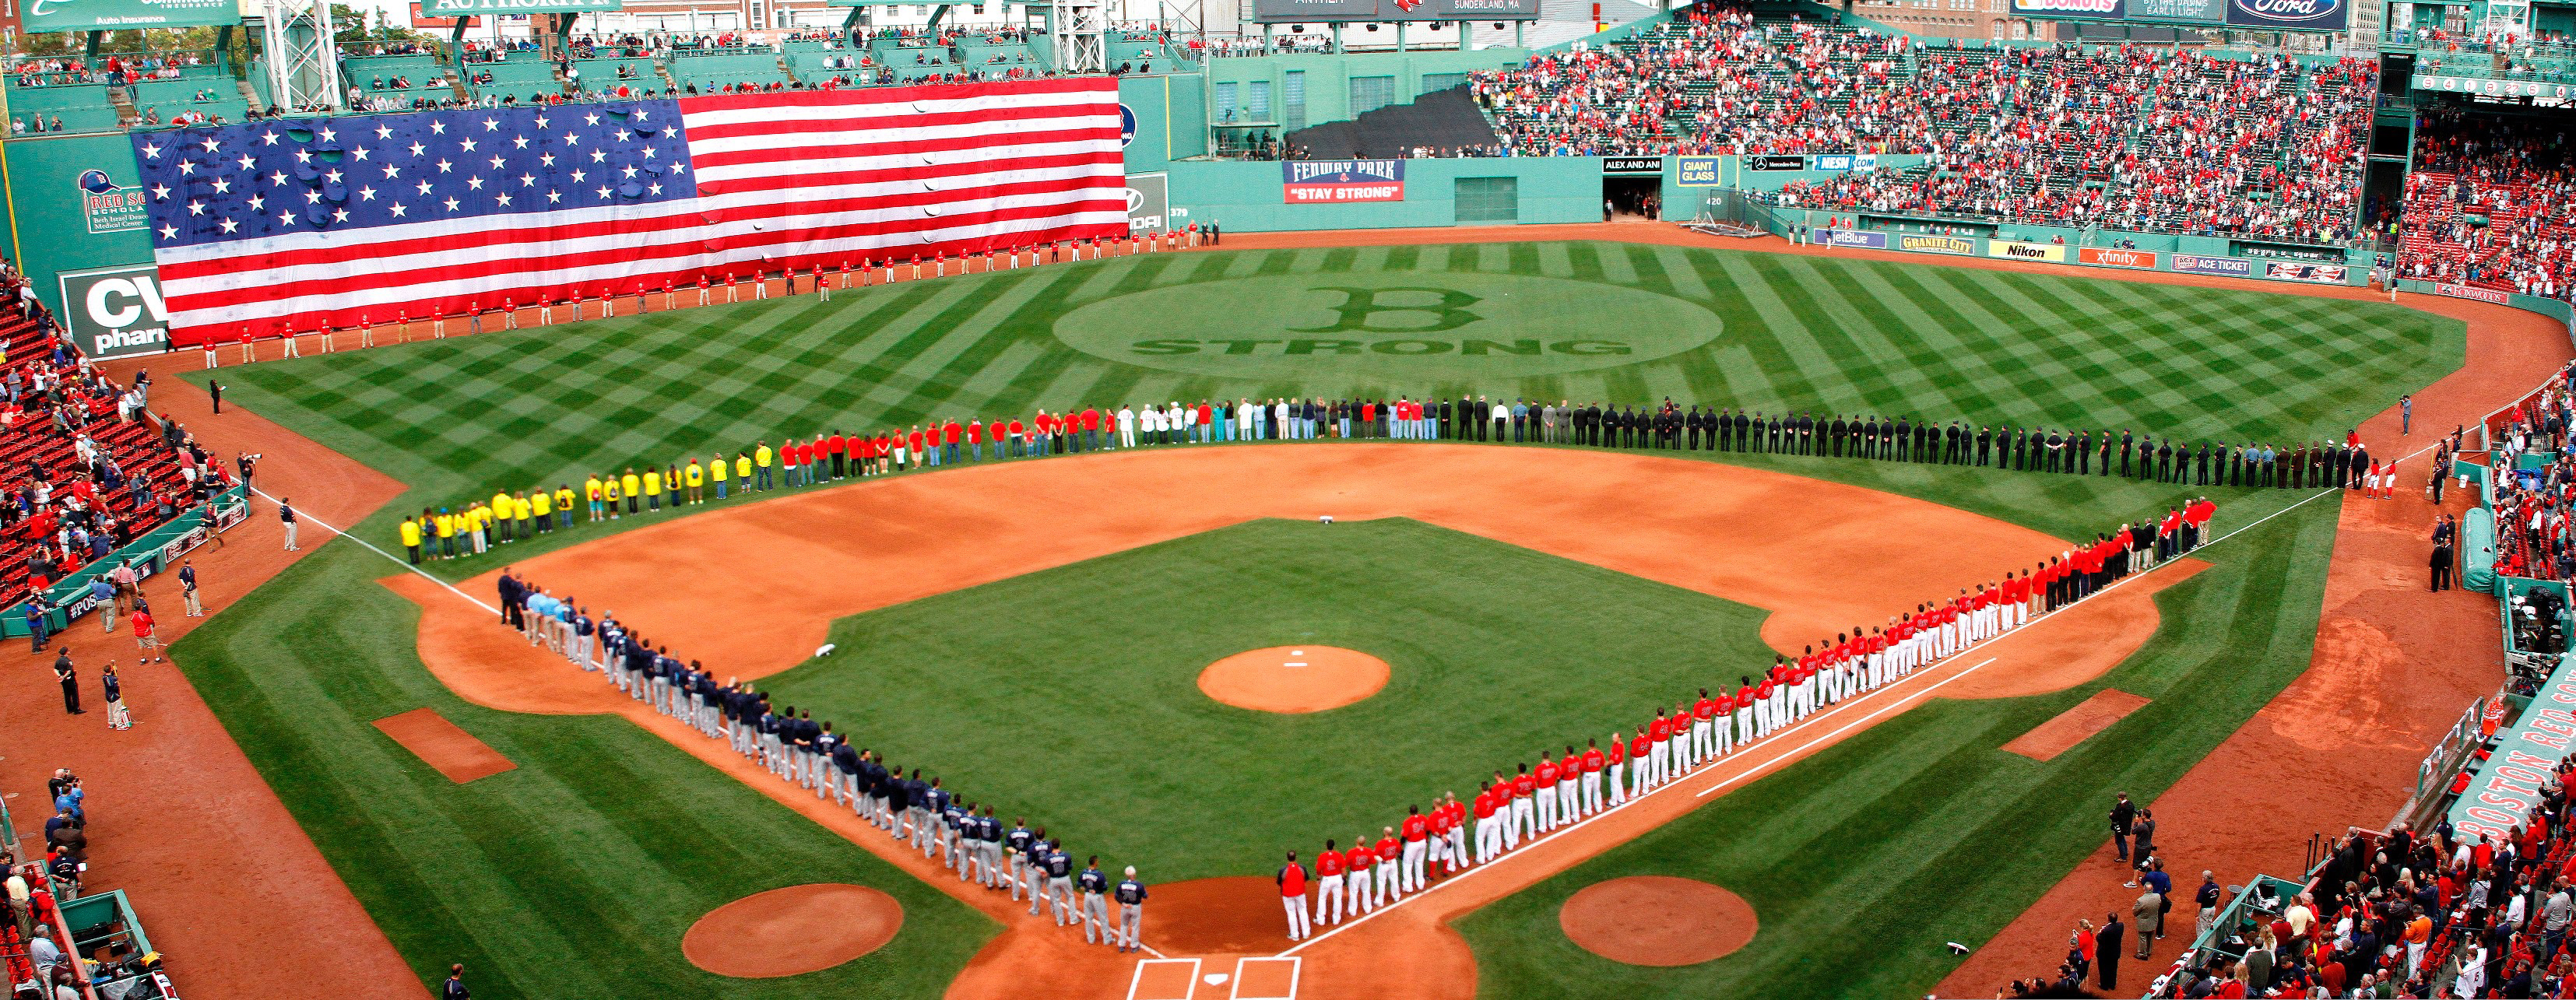 Fenway Park in 2013. (Photo by Marissa McClain/Boston Red Sox)